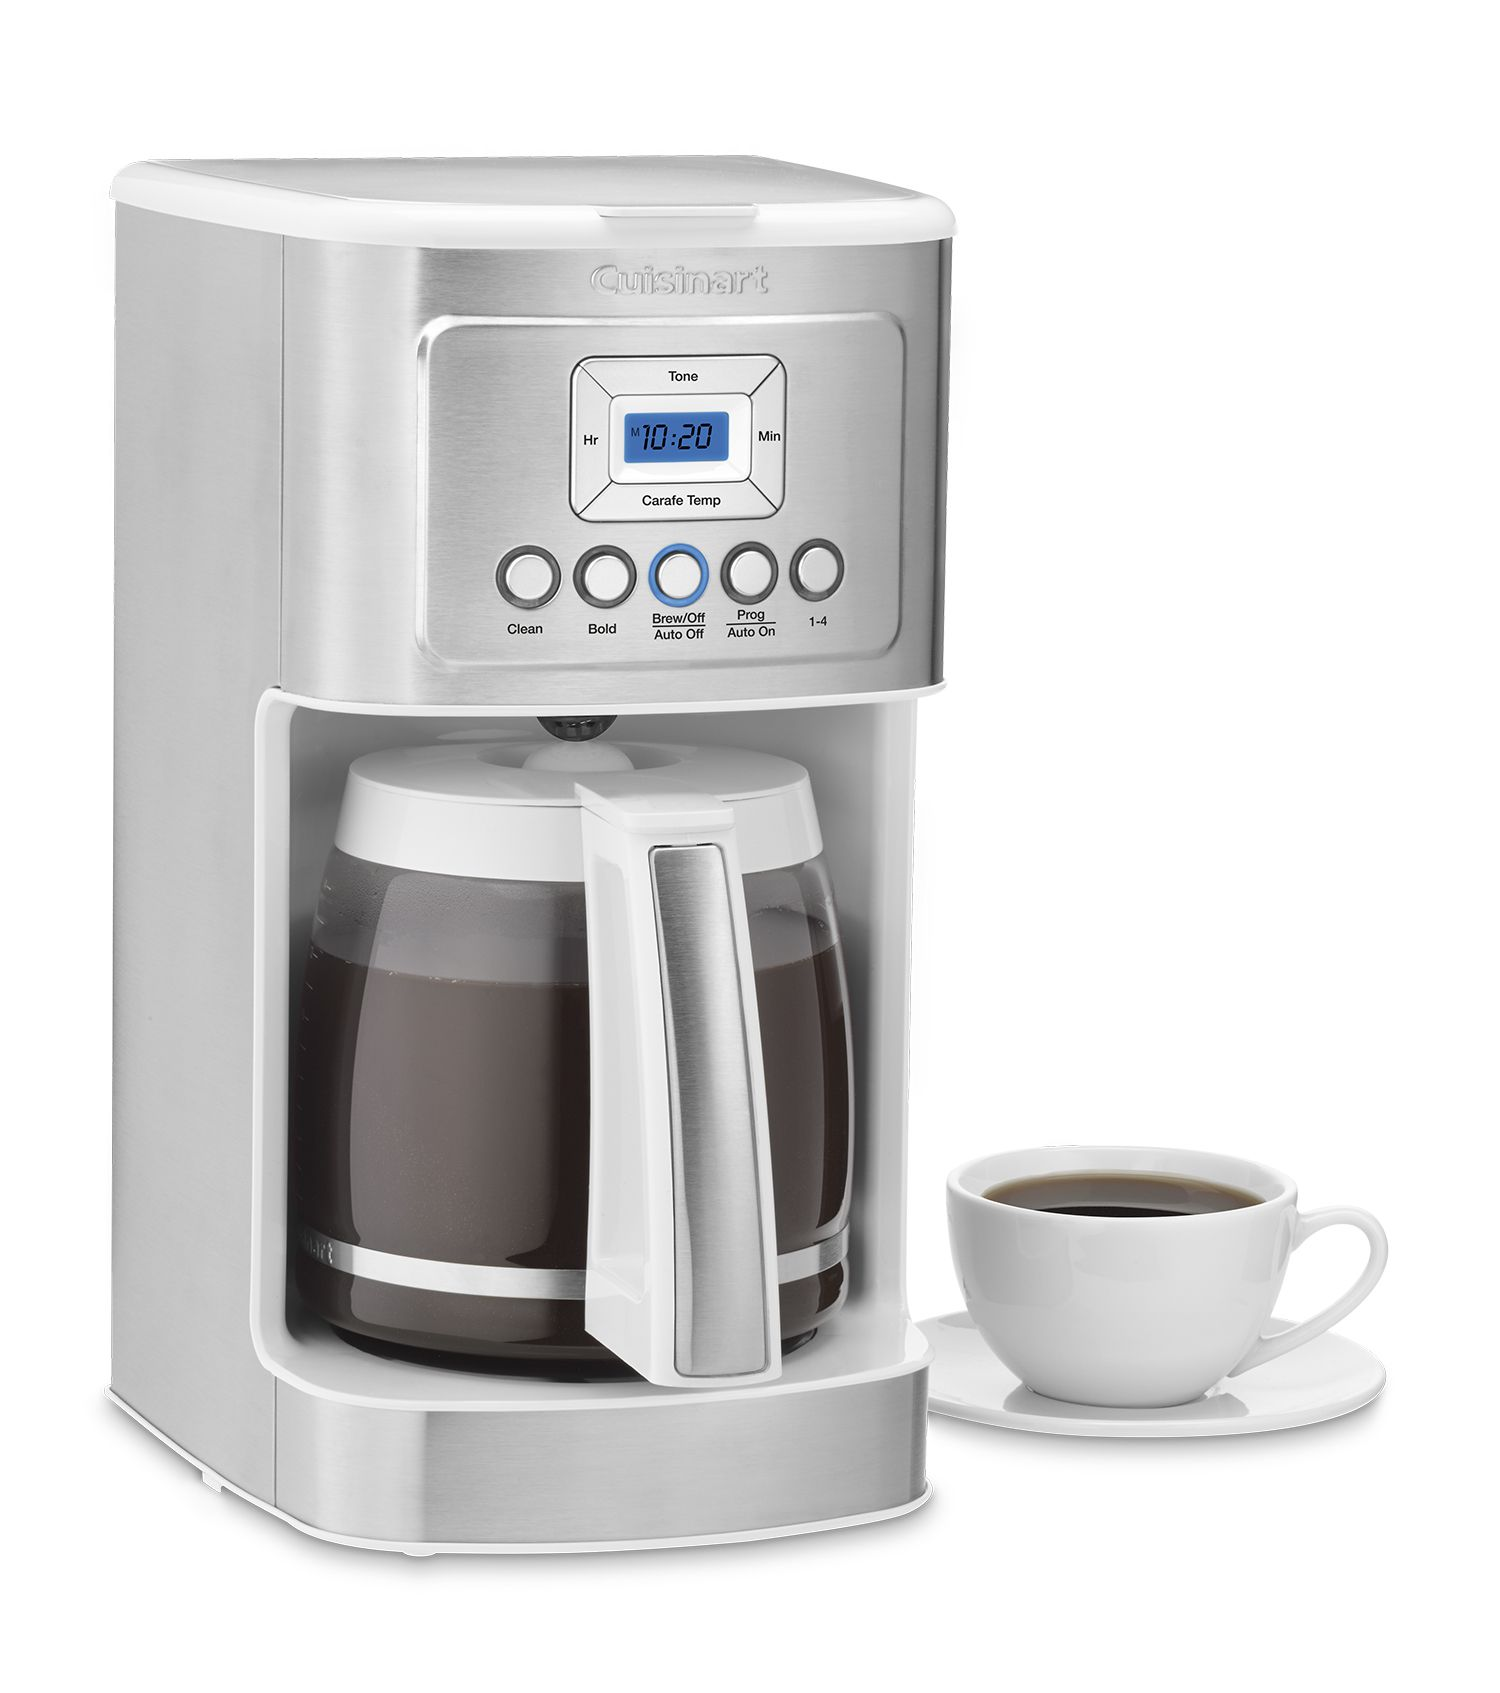 The Cuisinart 14 Cup Programmable Coffeemaker Offers The Best Of Both Worlds With Hotter Coffee And Option Coffee Maker Best Coffee Maker Electric Coffee Maker